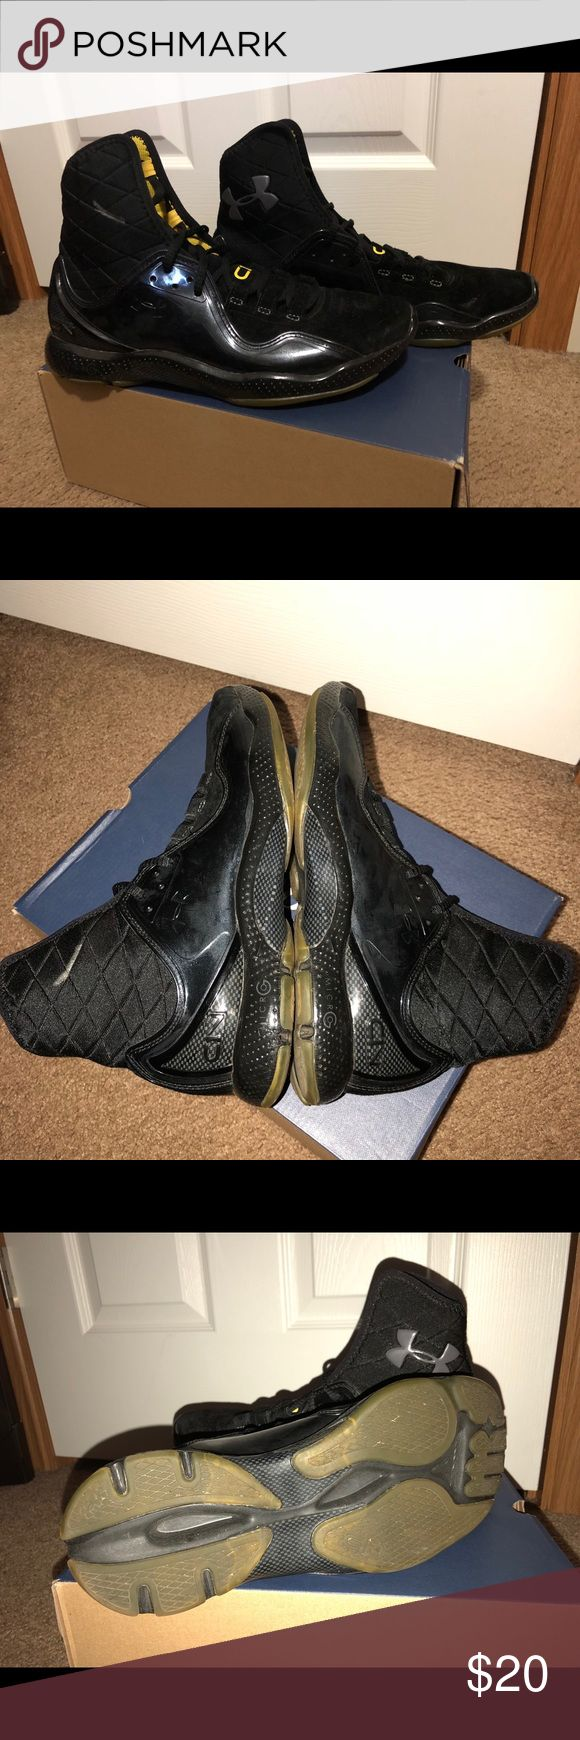 Under Armour Cam Newtons Good ankle support, barely worn. Under Armour Shoes Sneakers